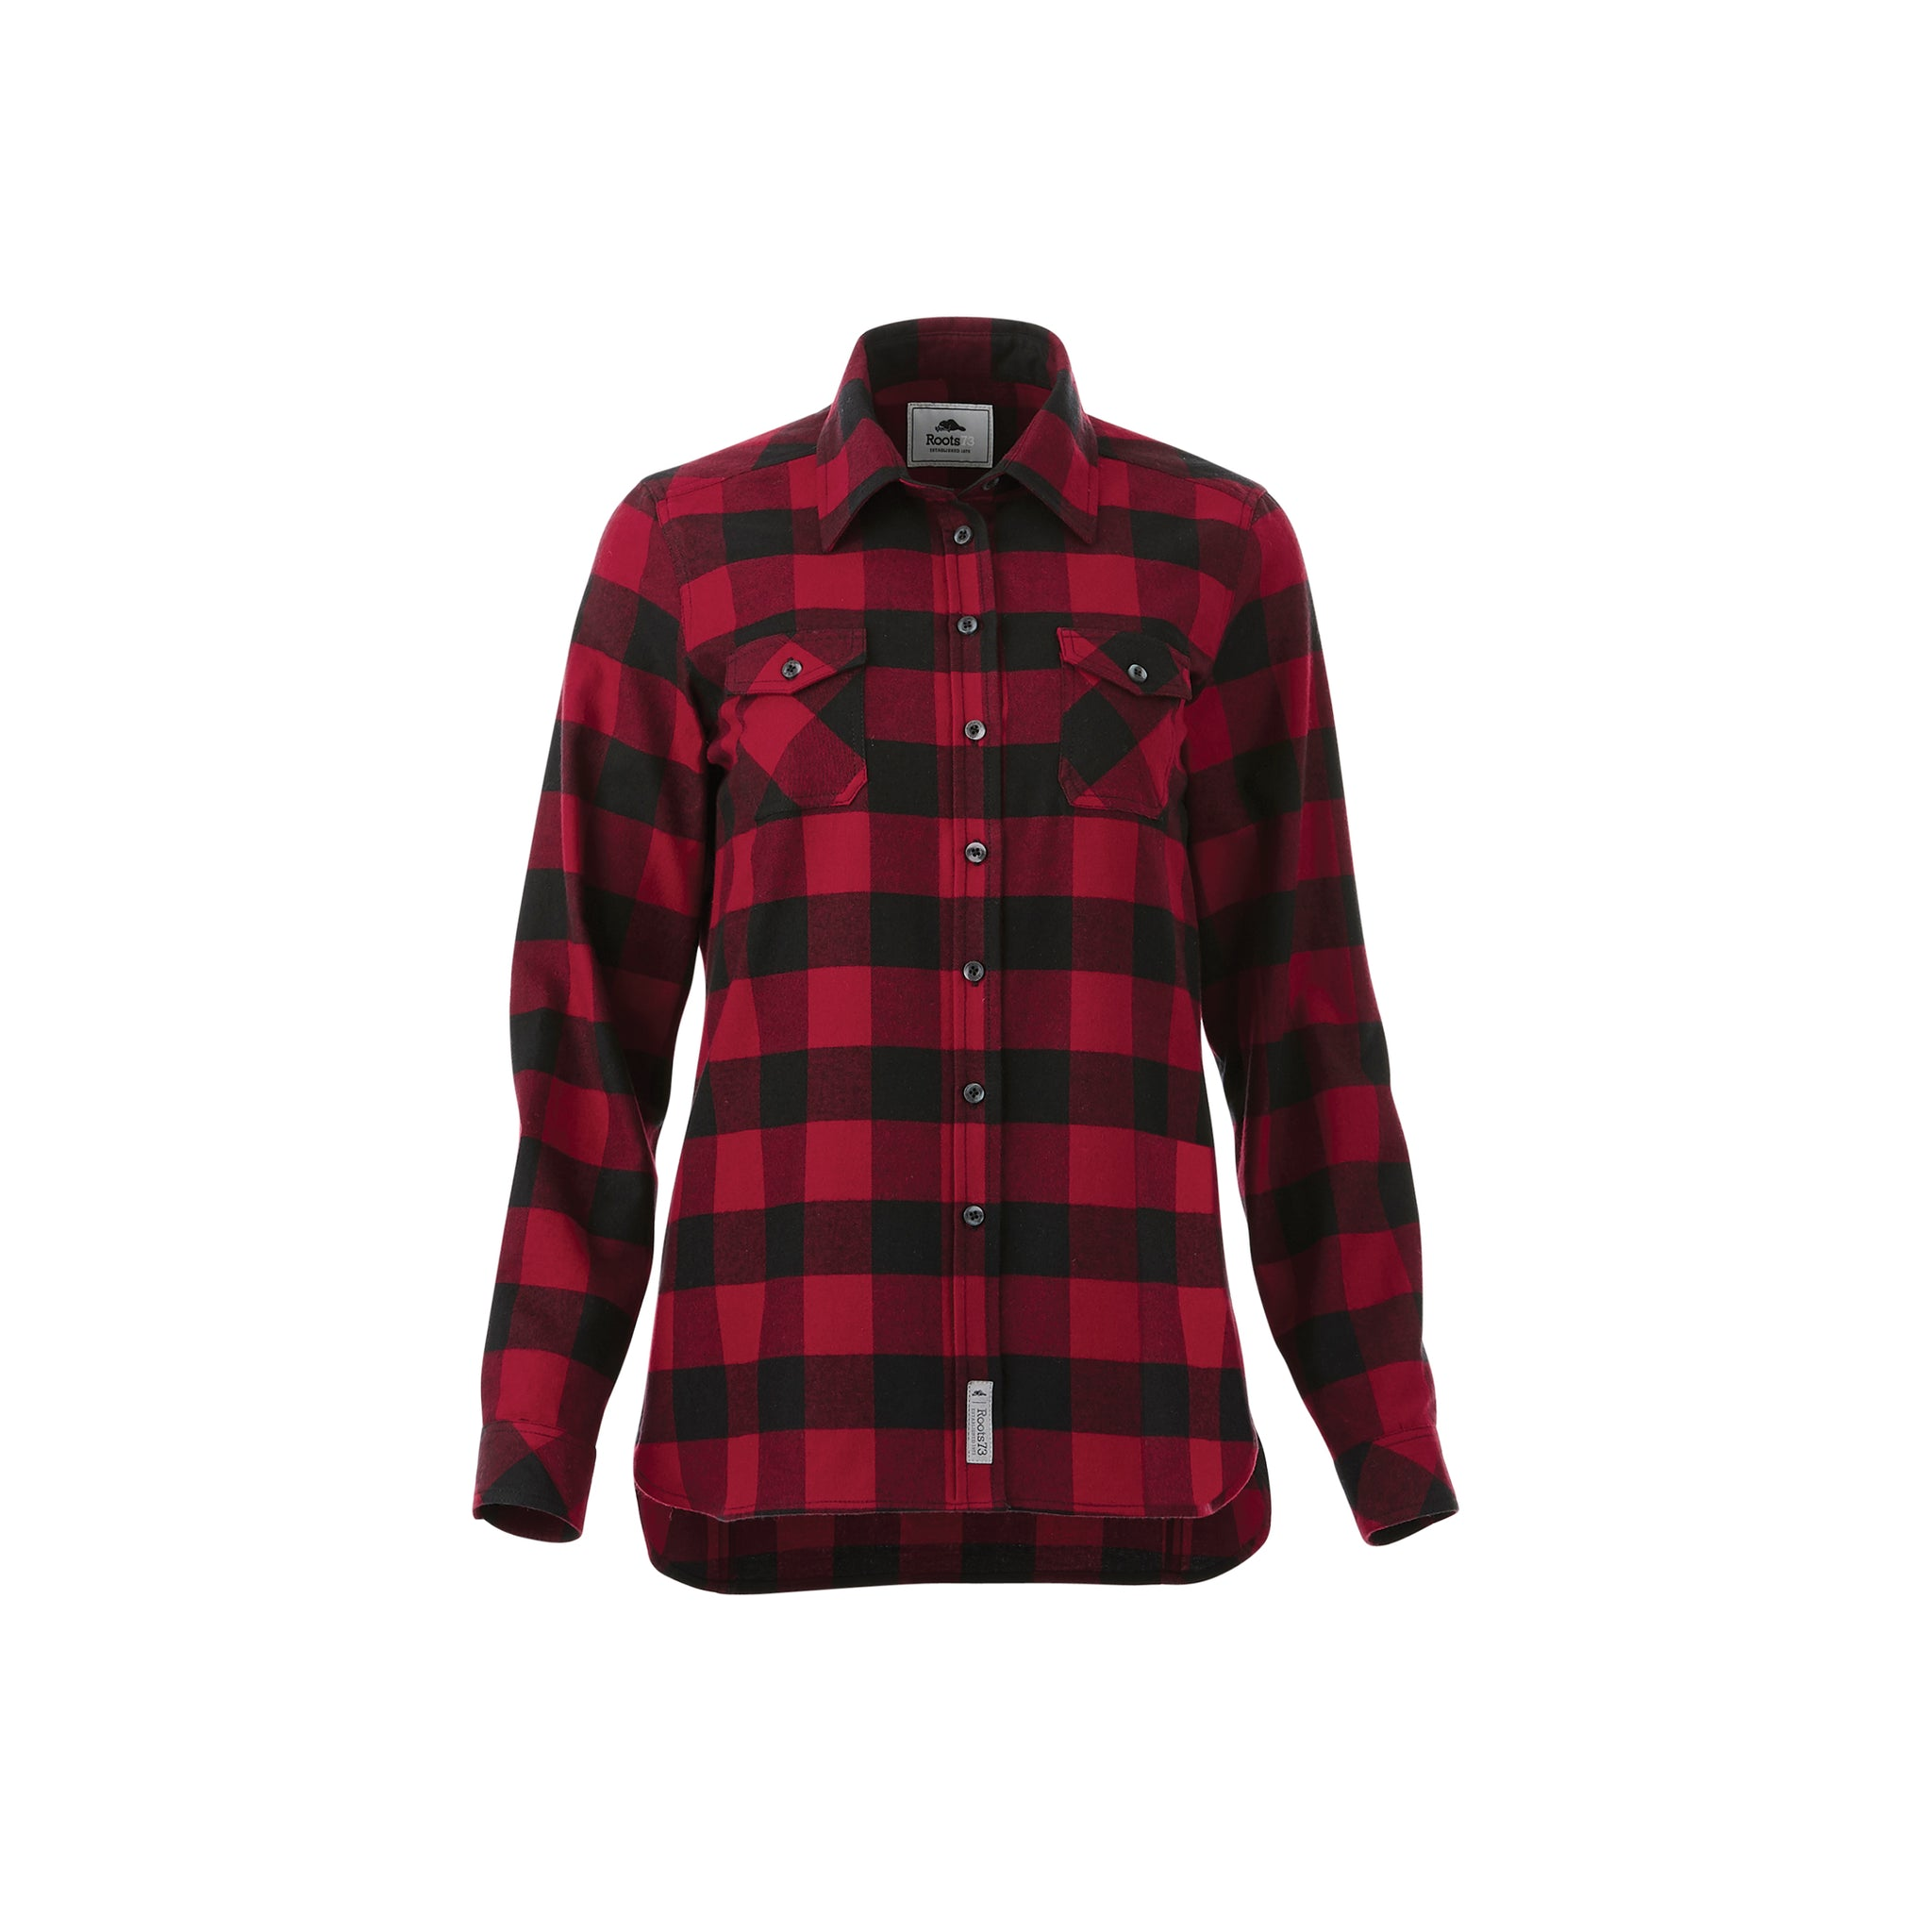 ROOTS73 LADIES SPRUCELAKE PLAID LONG SLEEVE SHIRT